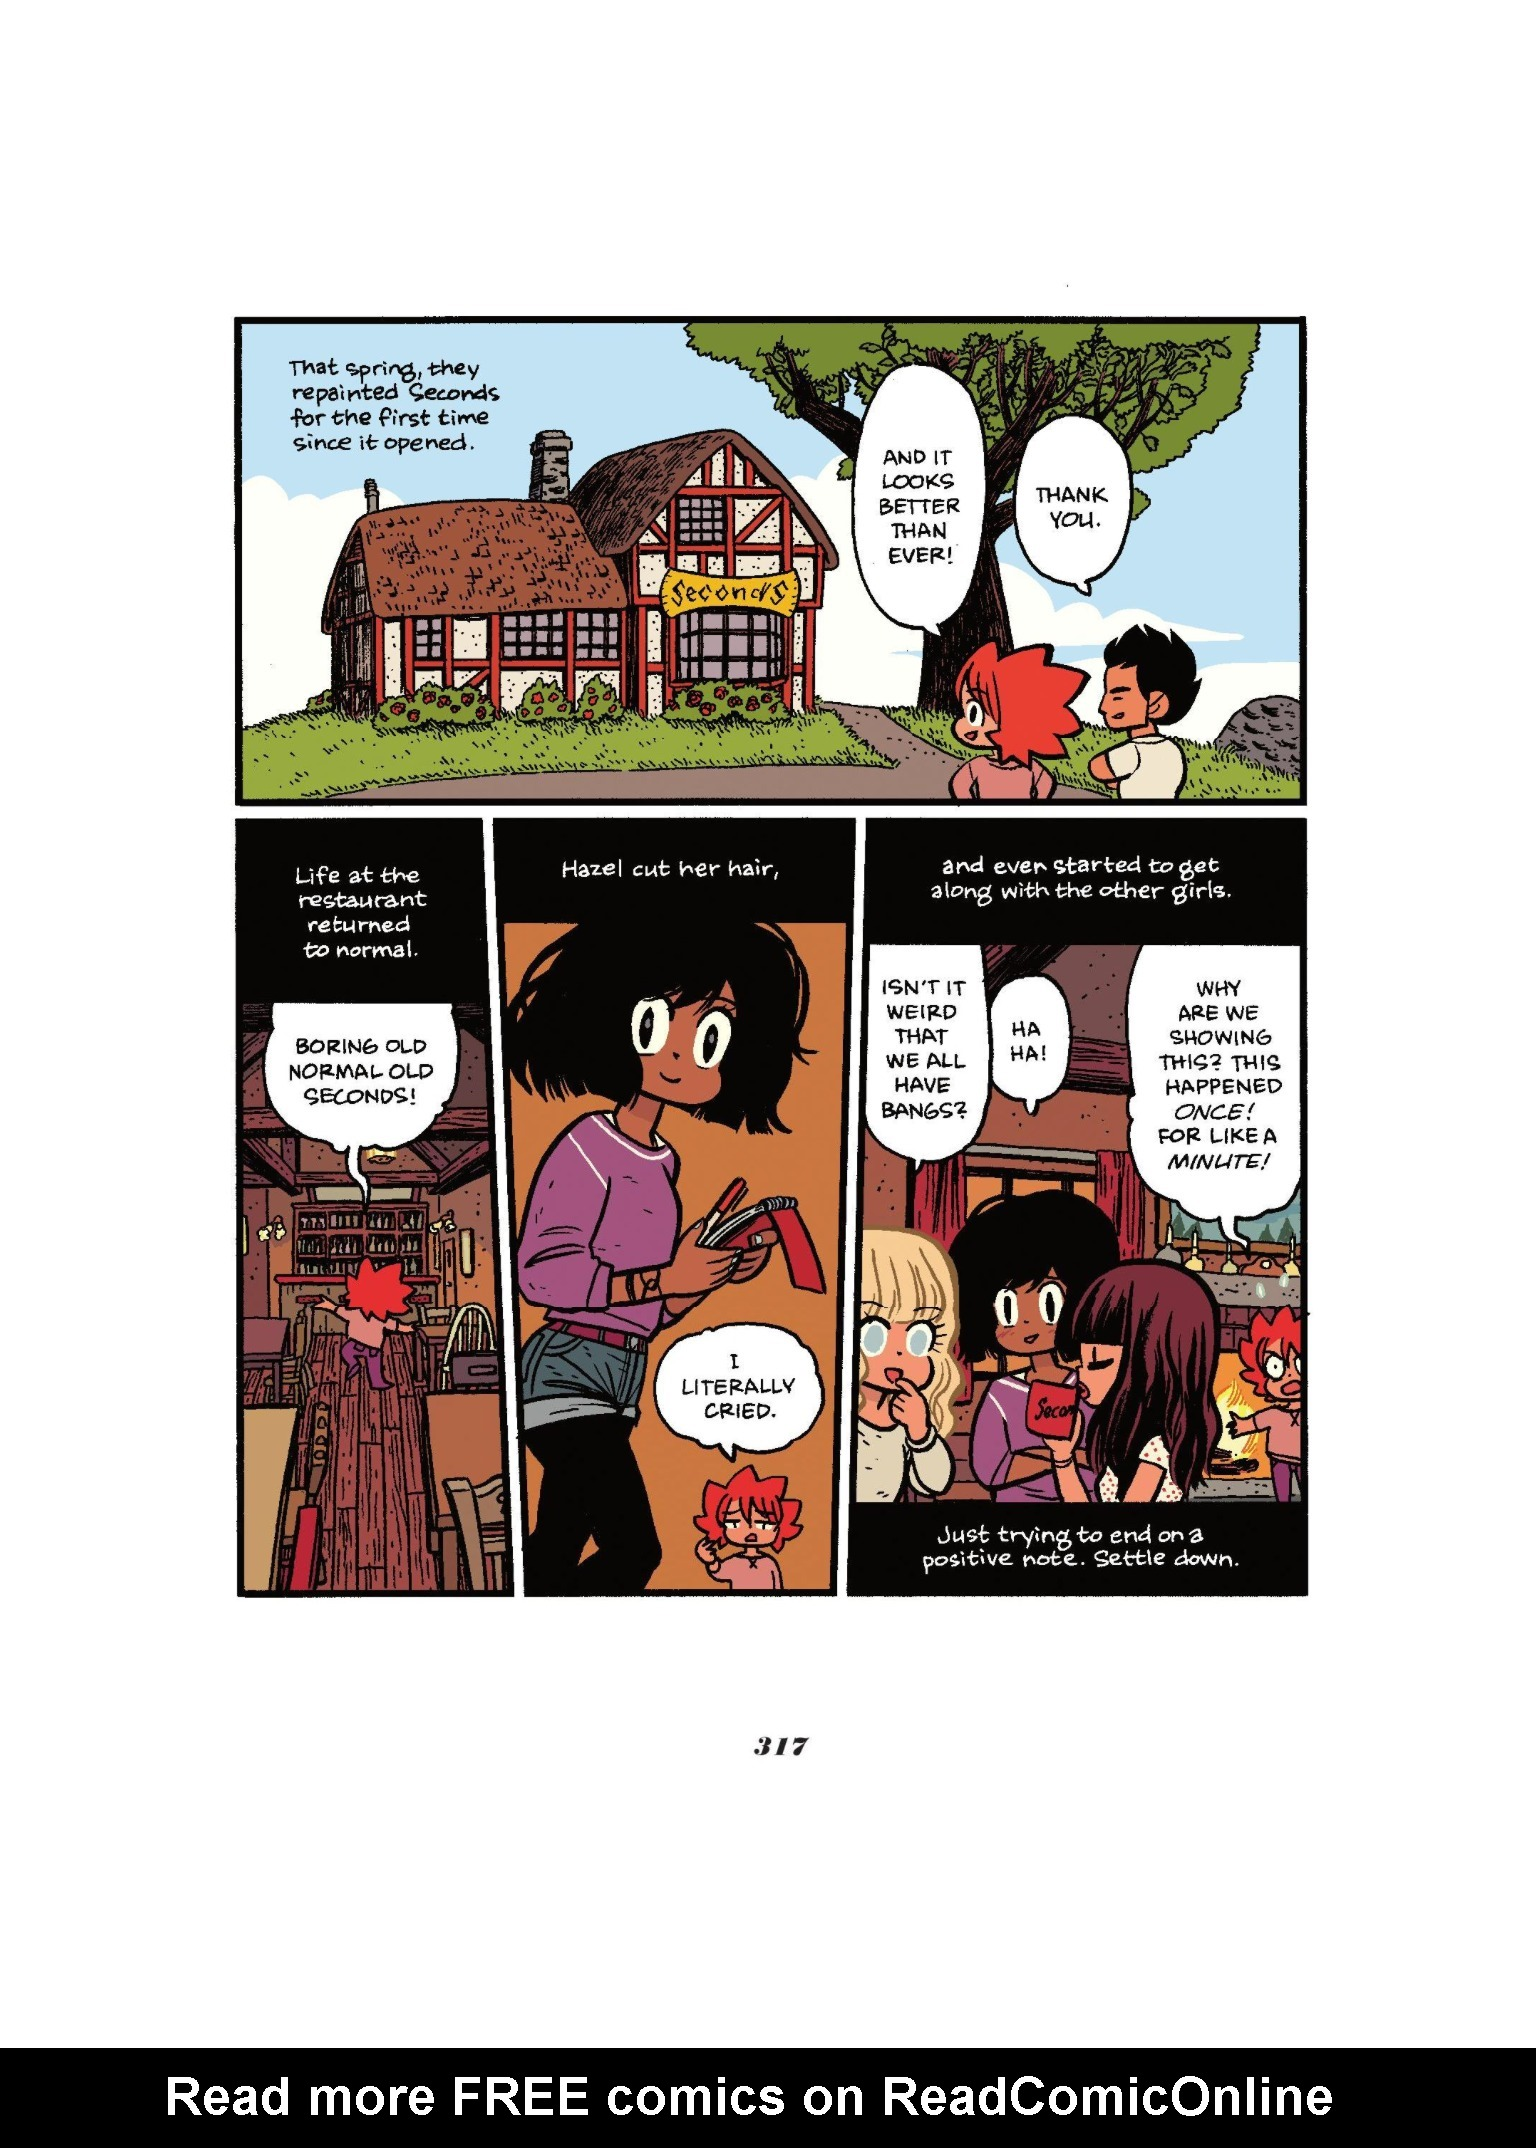 Read online Seconds comic -  Issue # Full - 317